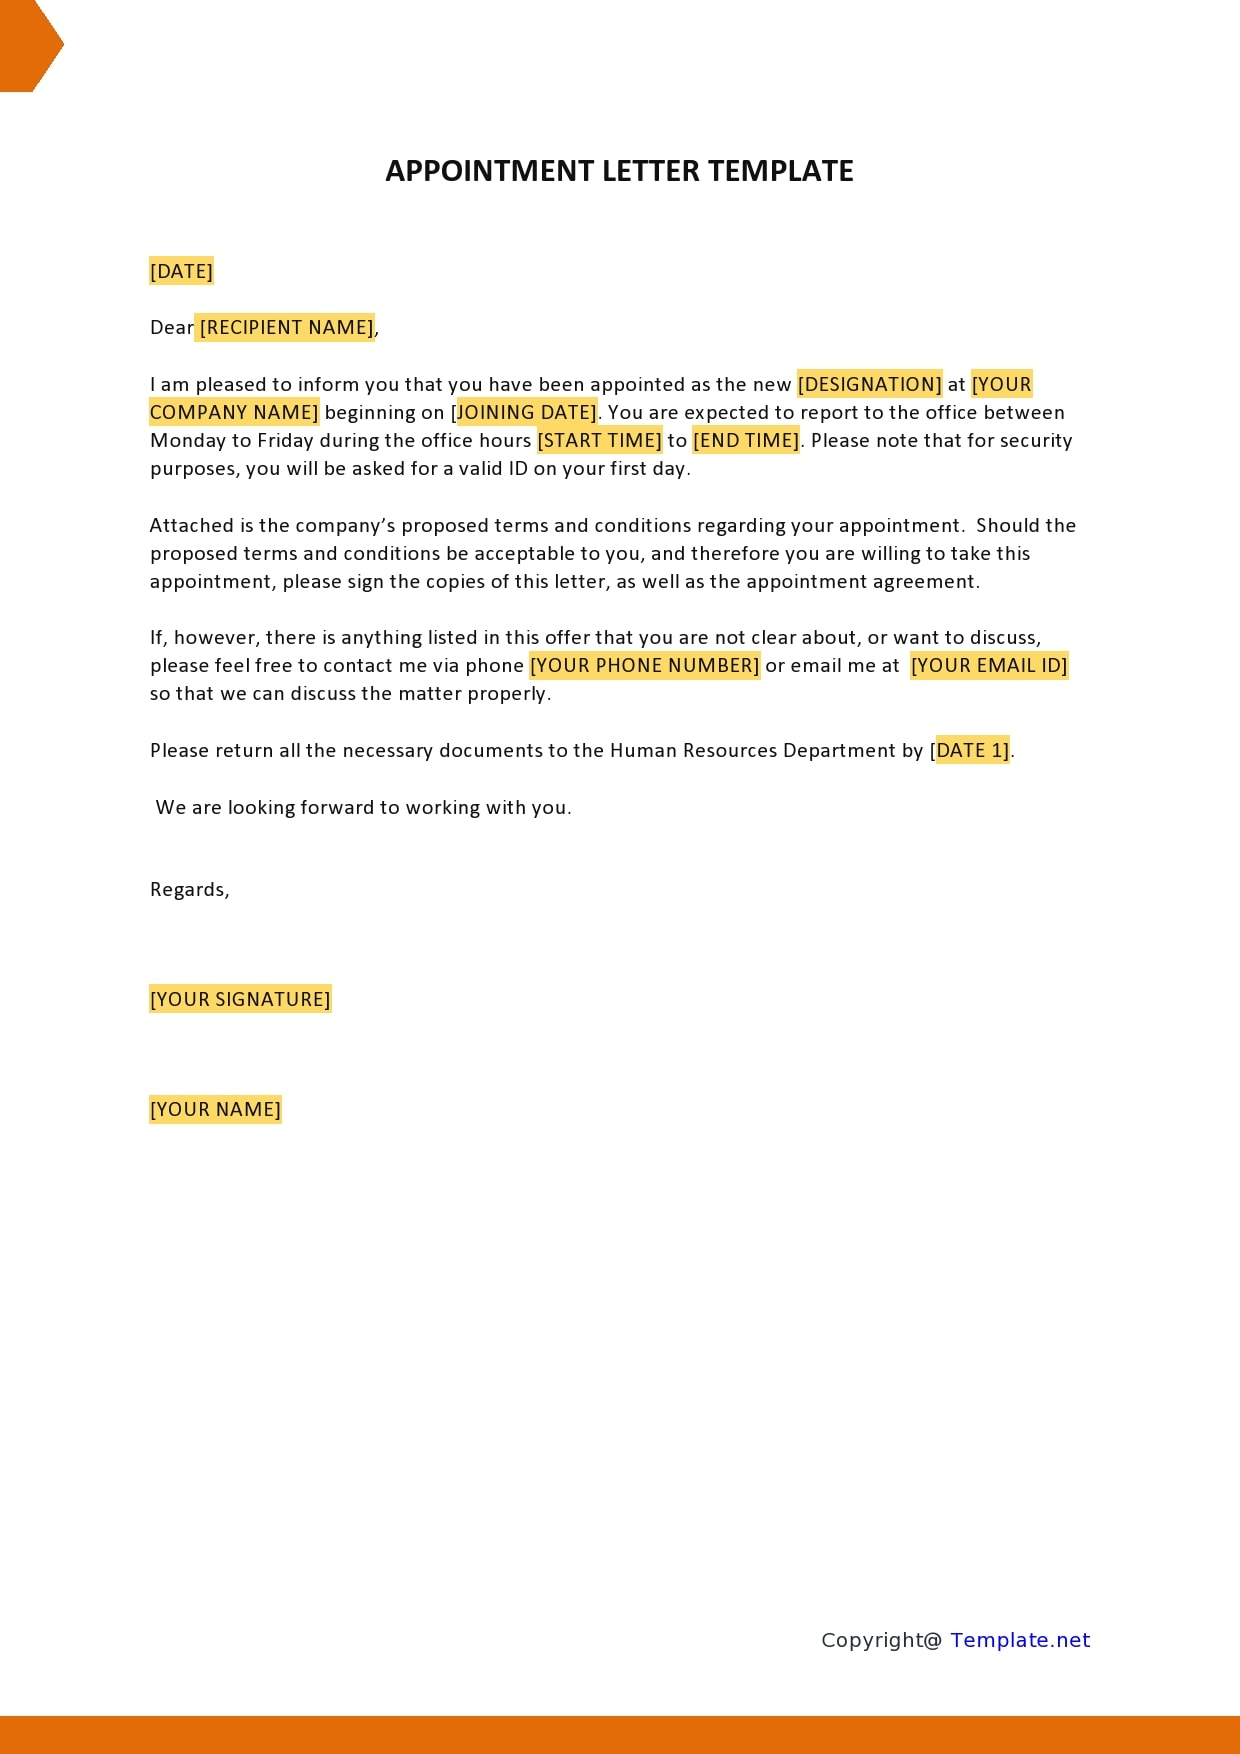 30 Professional Appointment Letter Samples For Any Job